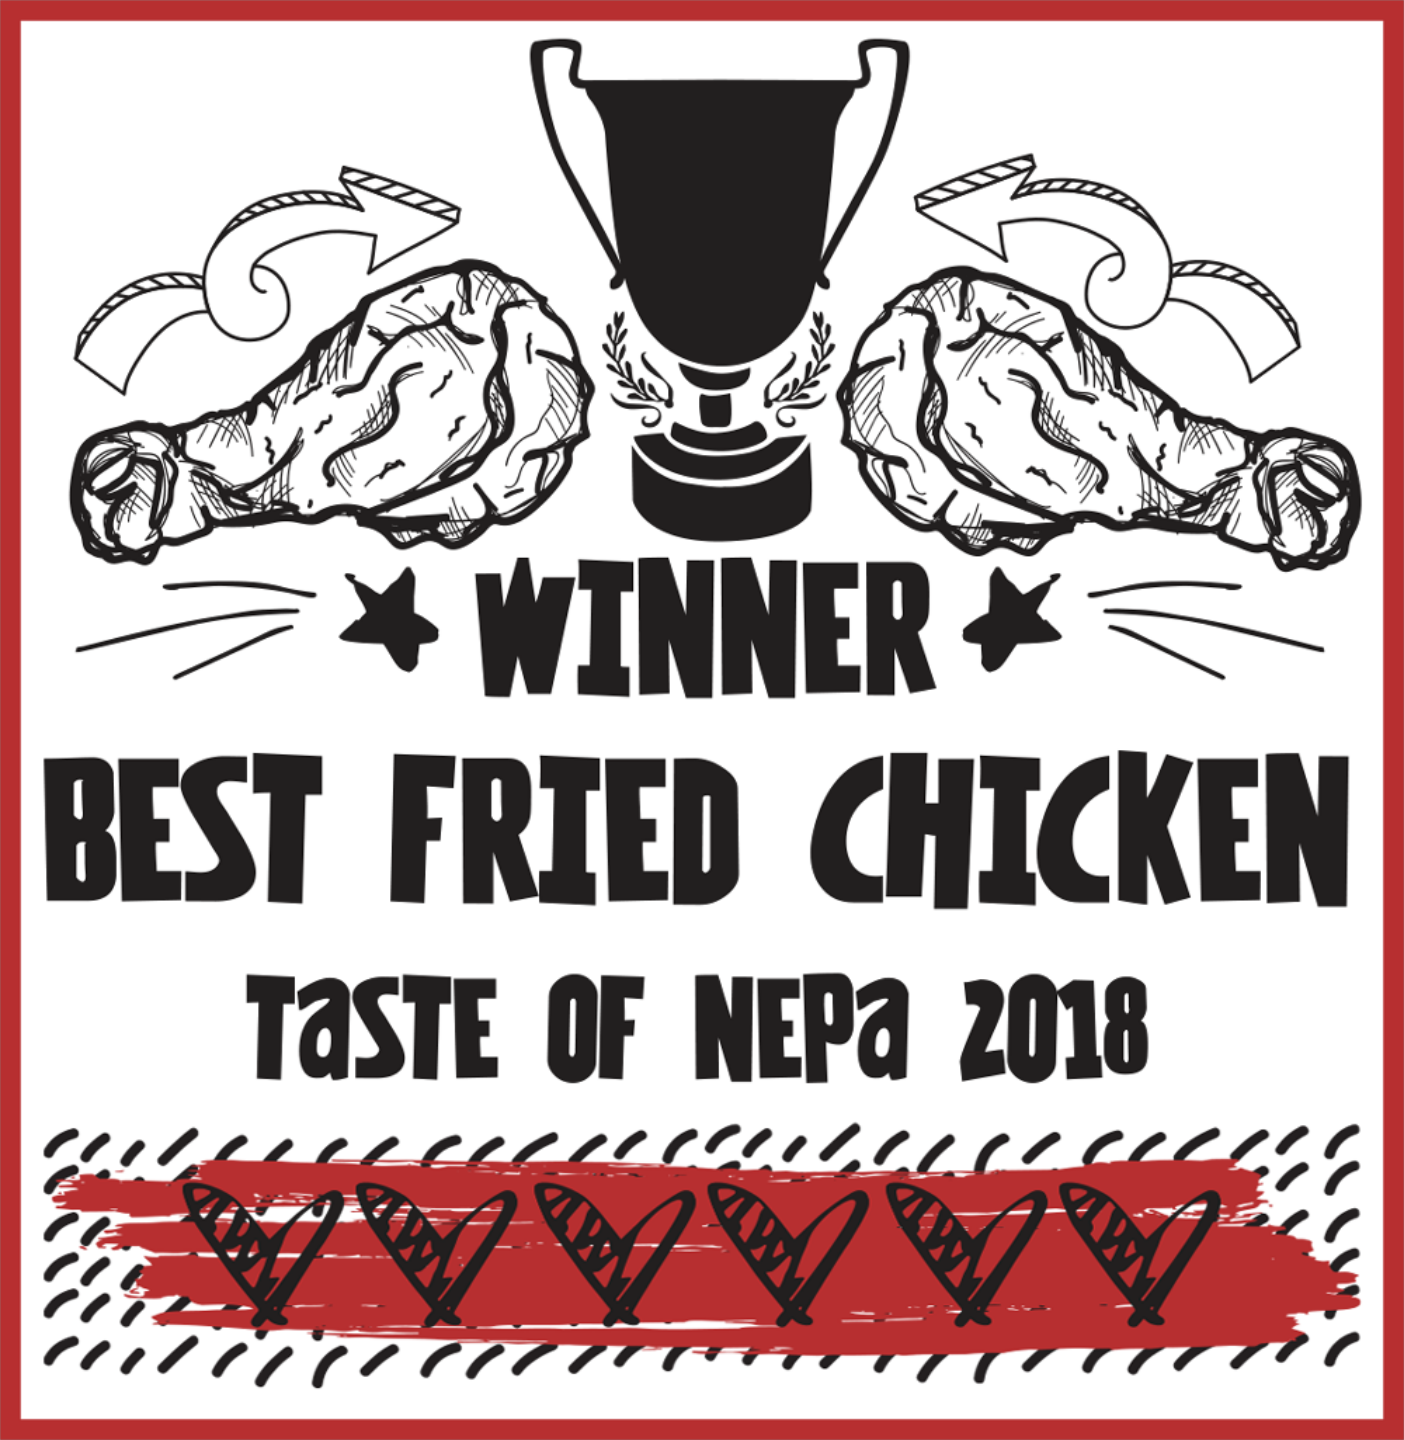 Best Fried Chicken Winner 2018